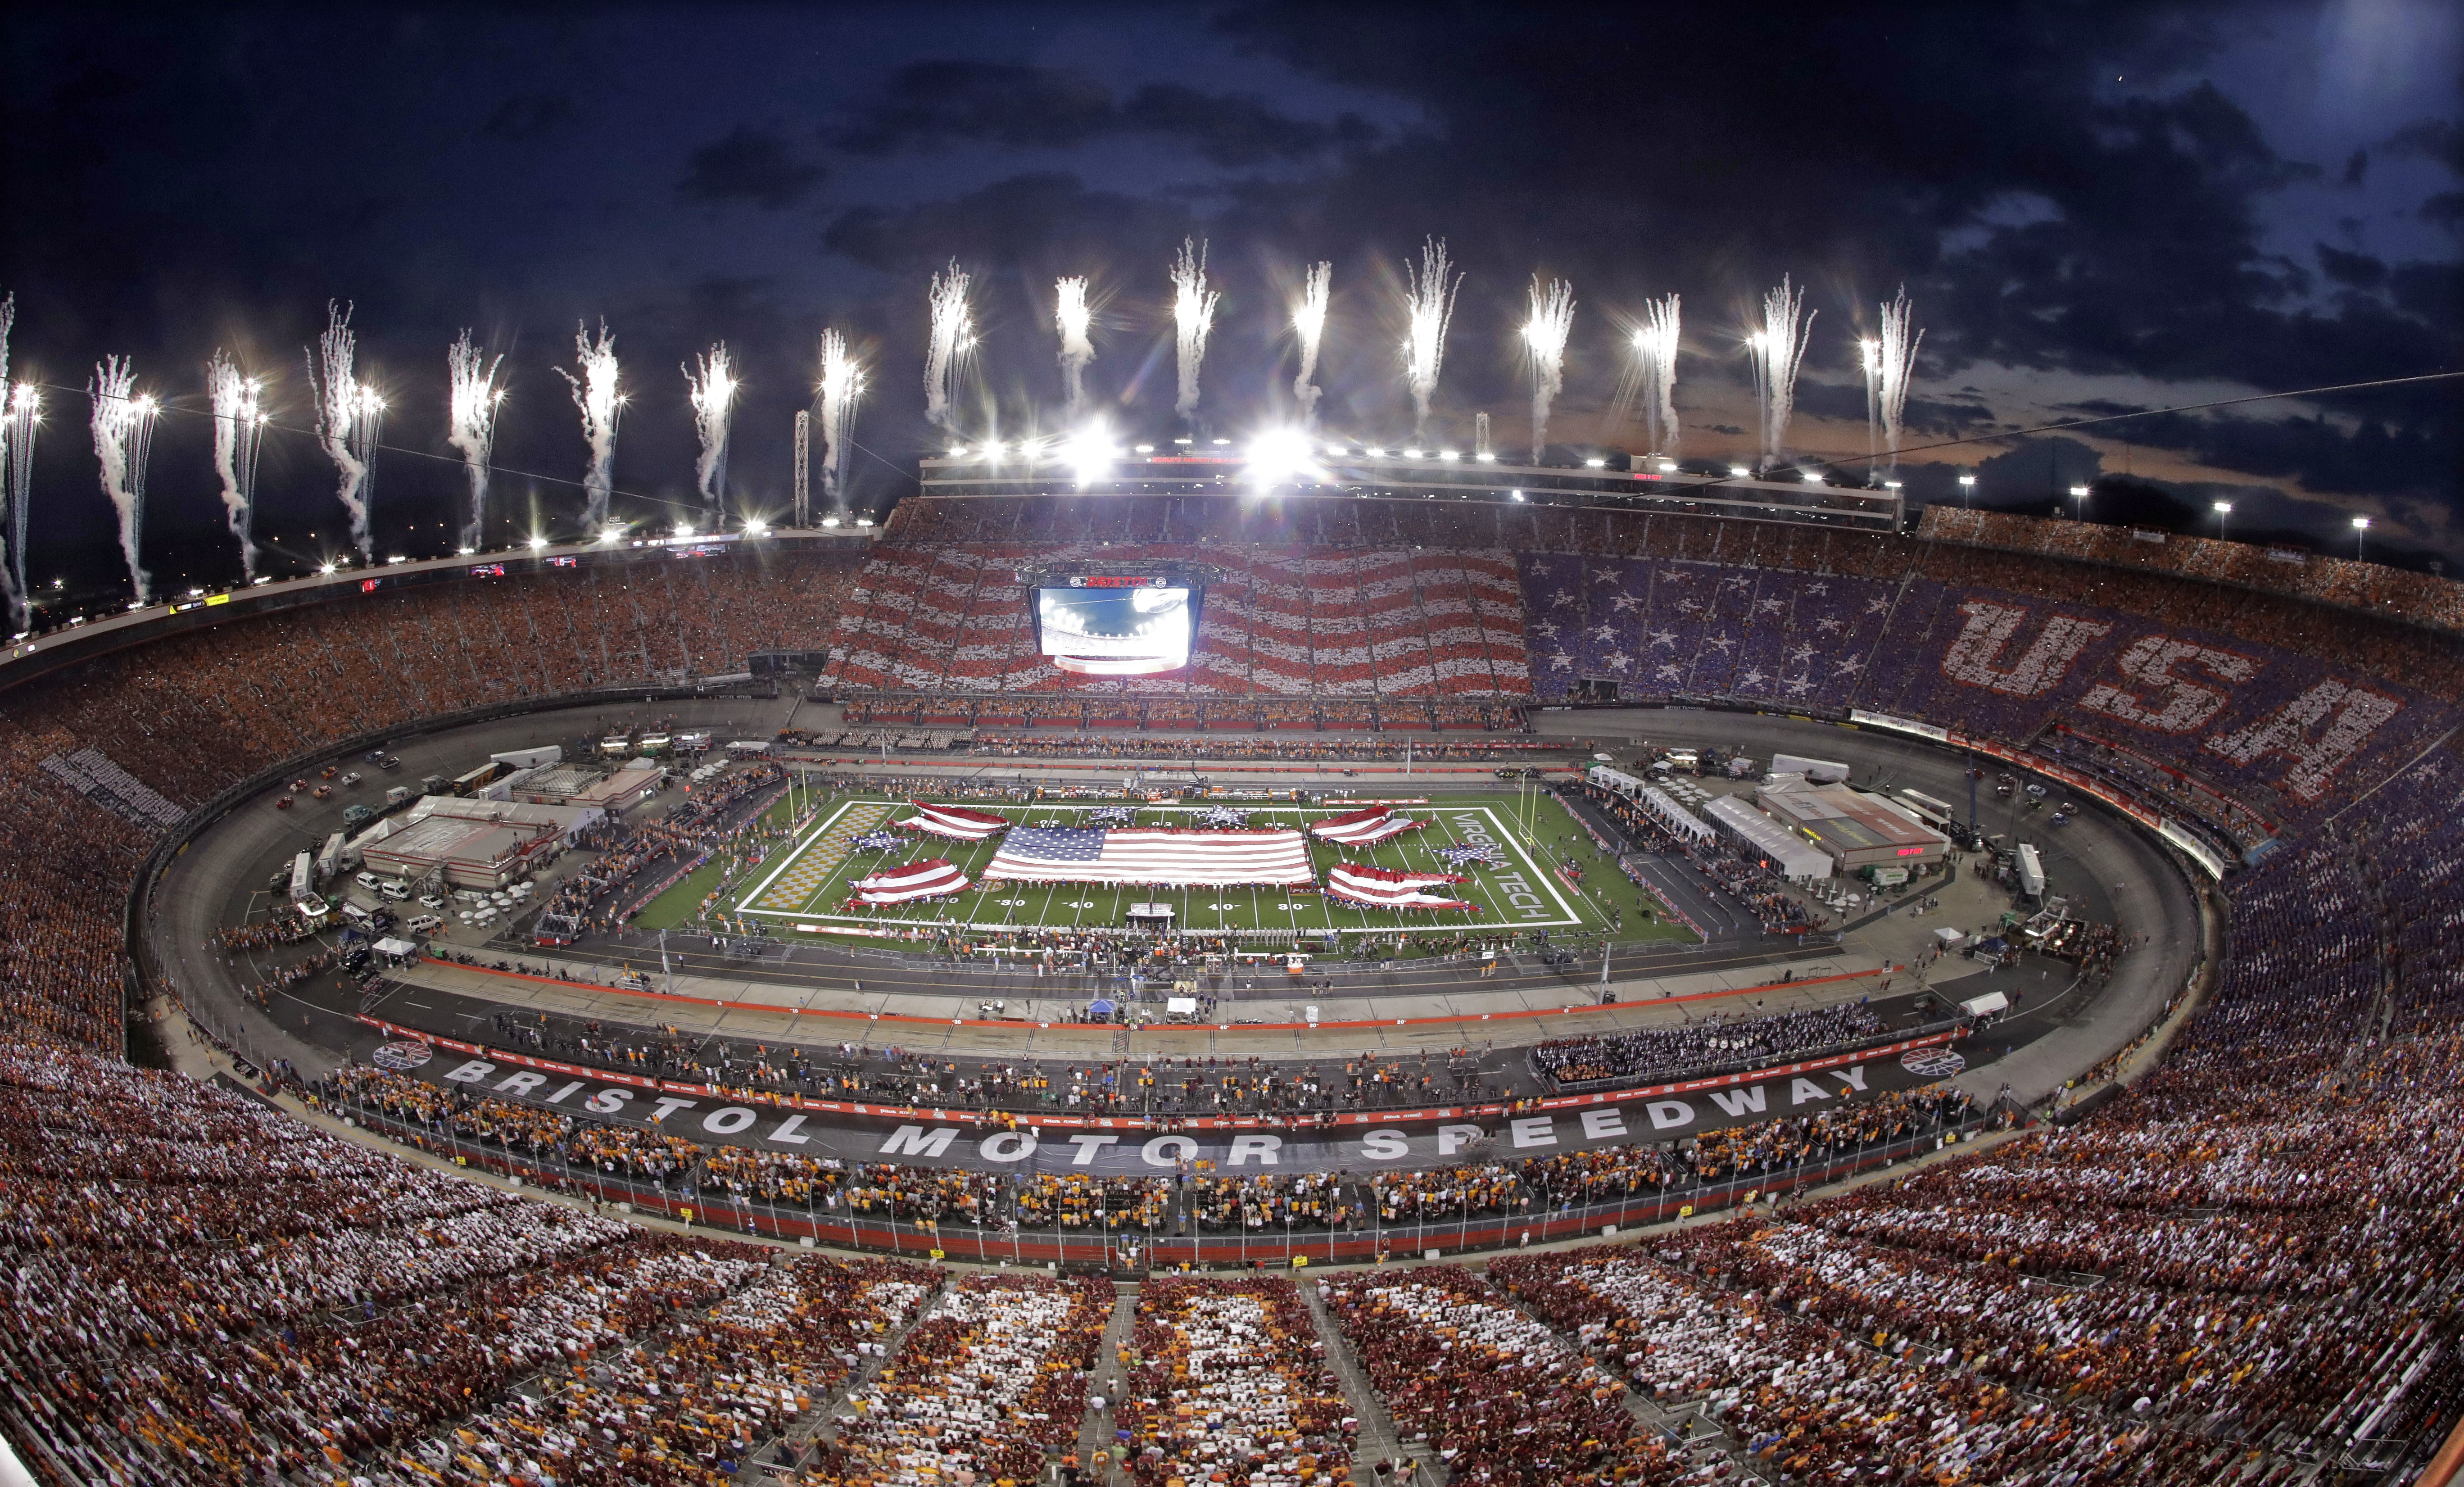 Flags are displayed and fireworks are set off during the national anthem before an NCAA college football game between Tennessee and Virginia Tech at Bristol Motor Speedway on Saturday, Sept. 10, 2016, in Bristol, Tenn. (AP Photo/Mark Humphrey)